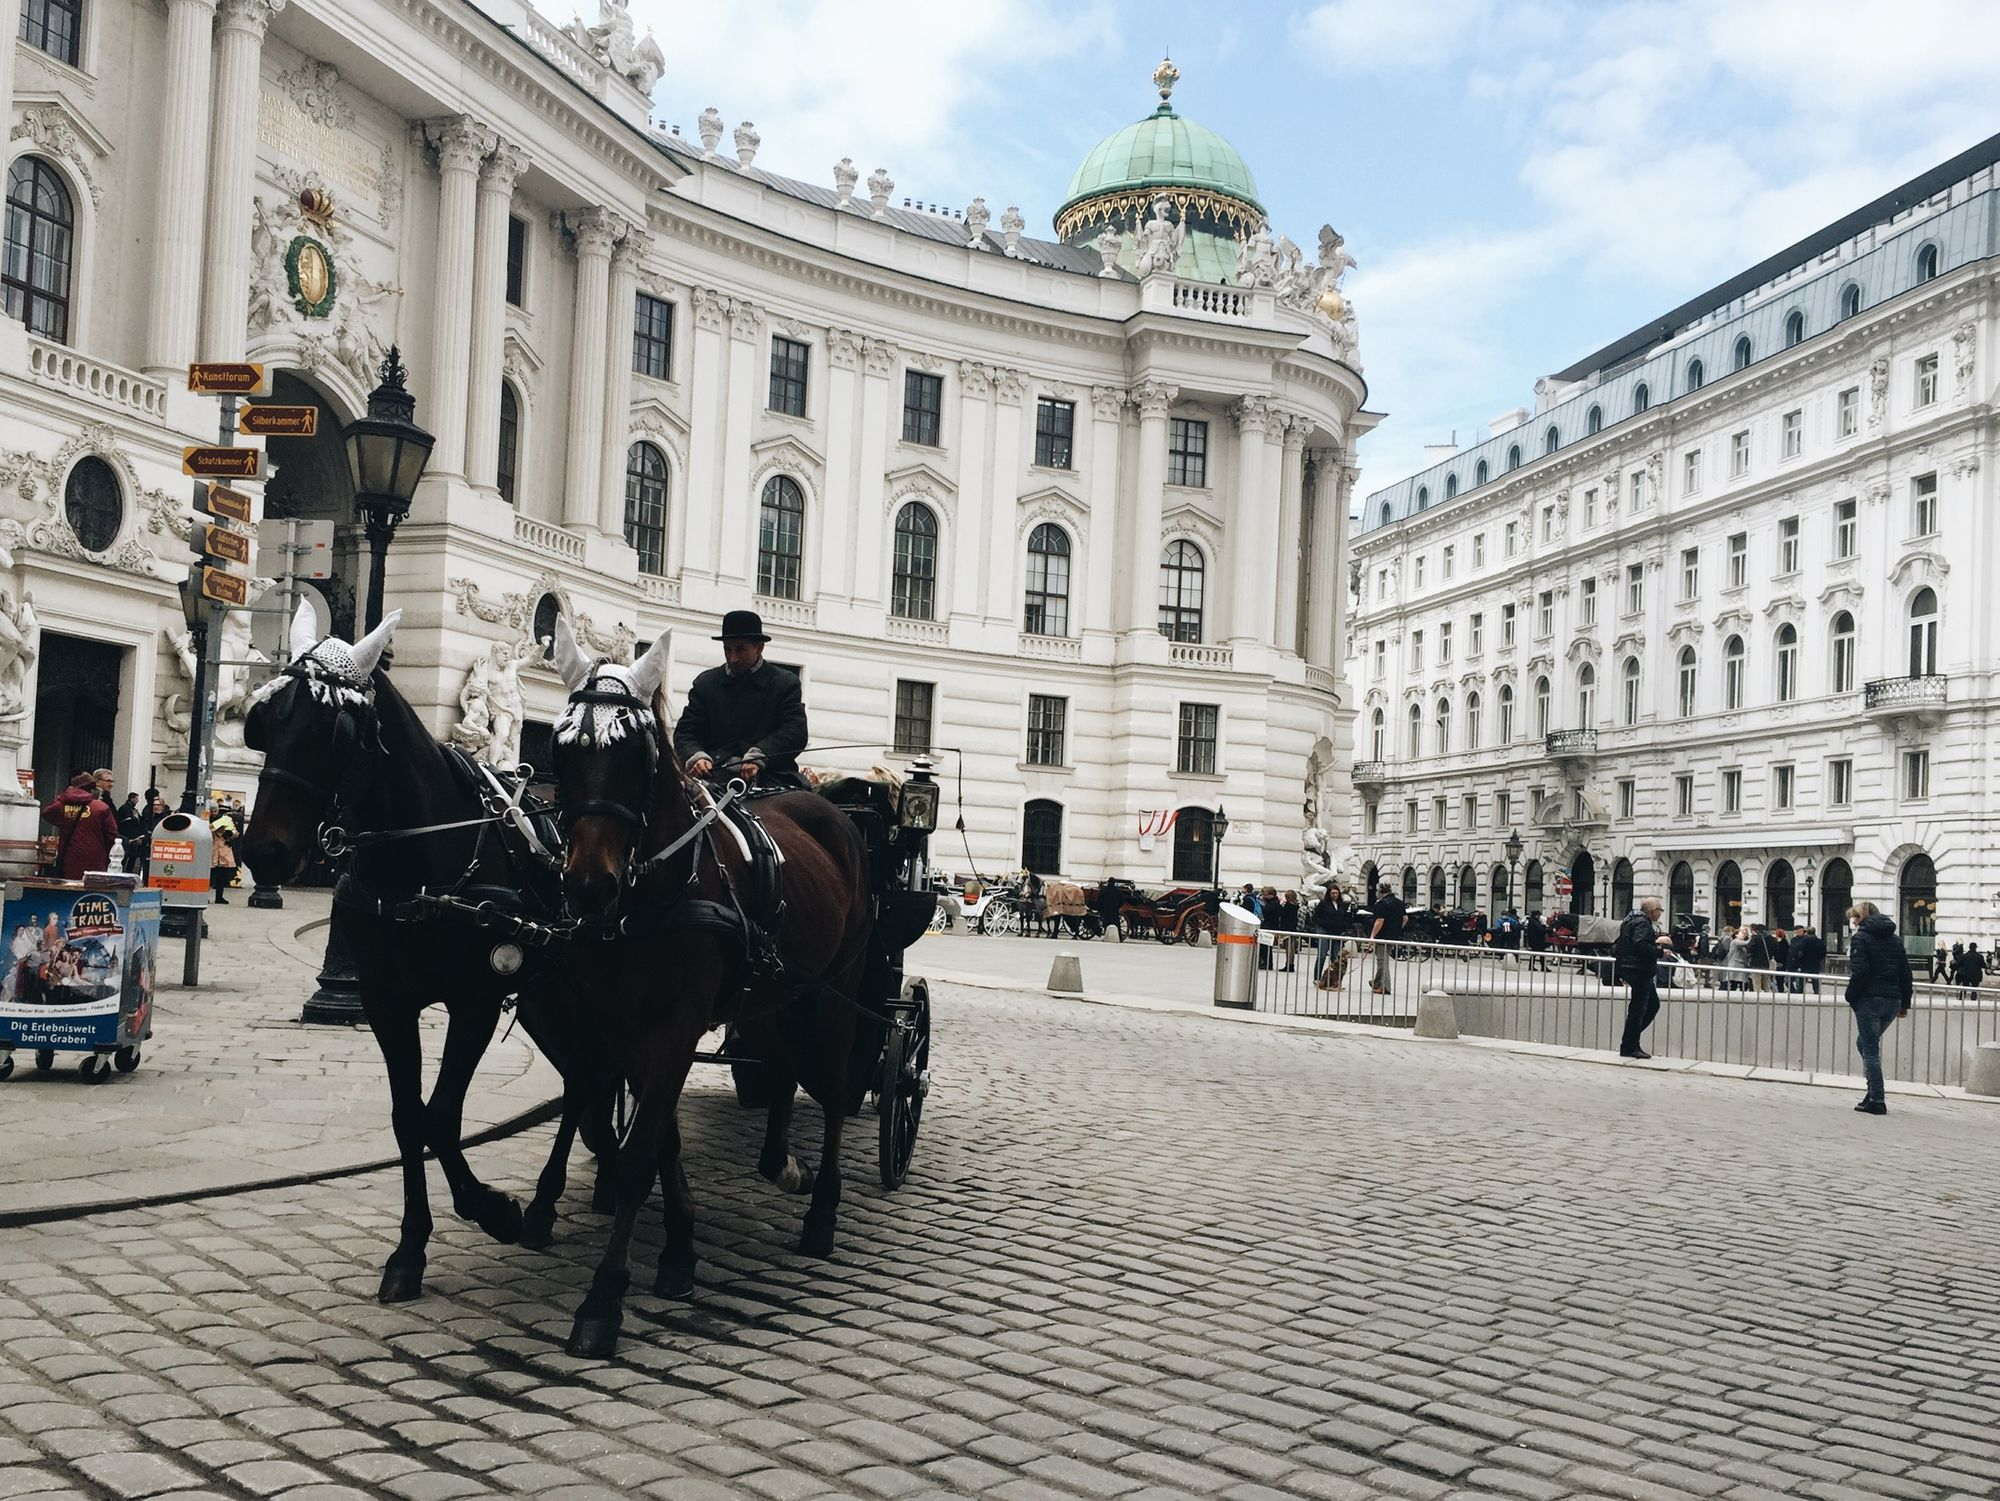 Horse carriage rides by the Hofburg in Vienna, Austria.